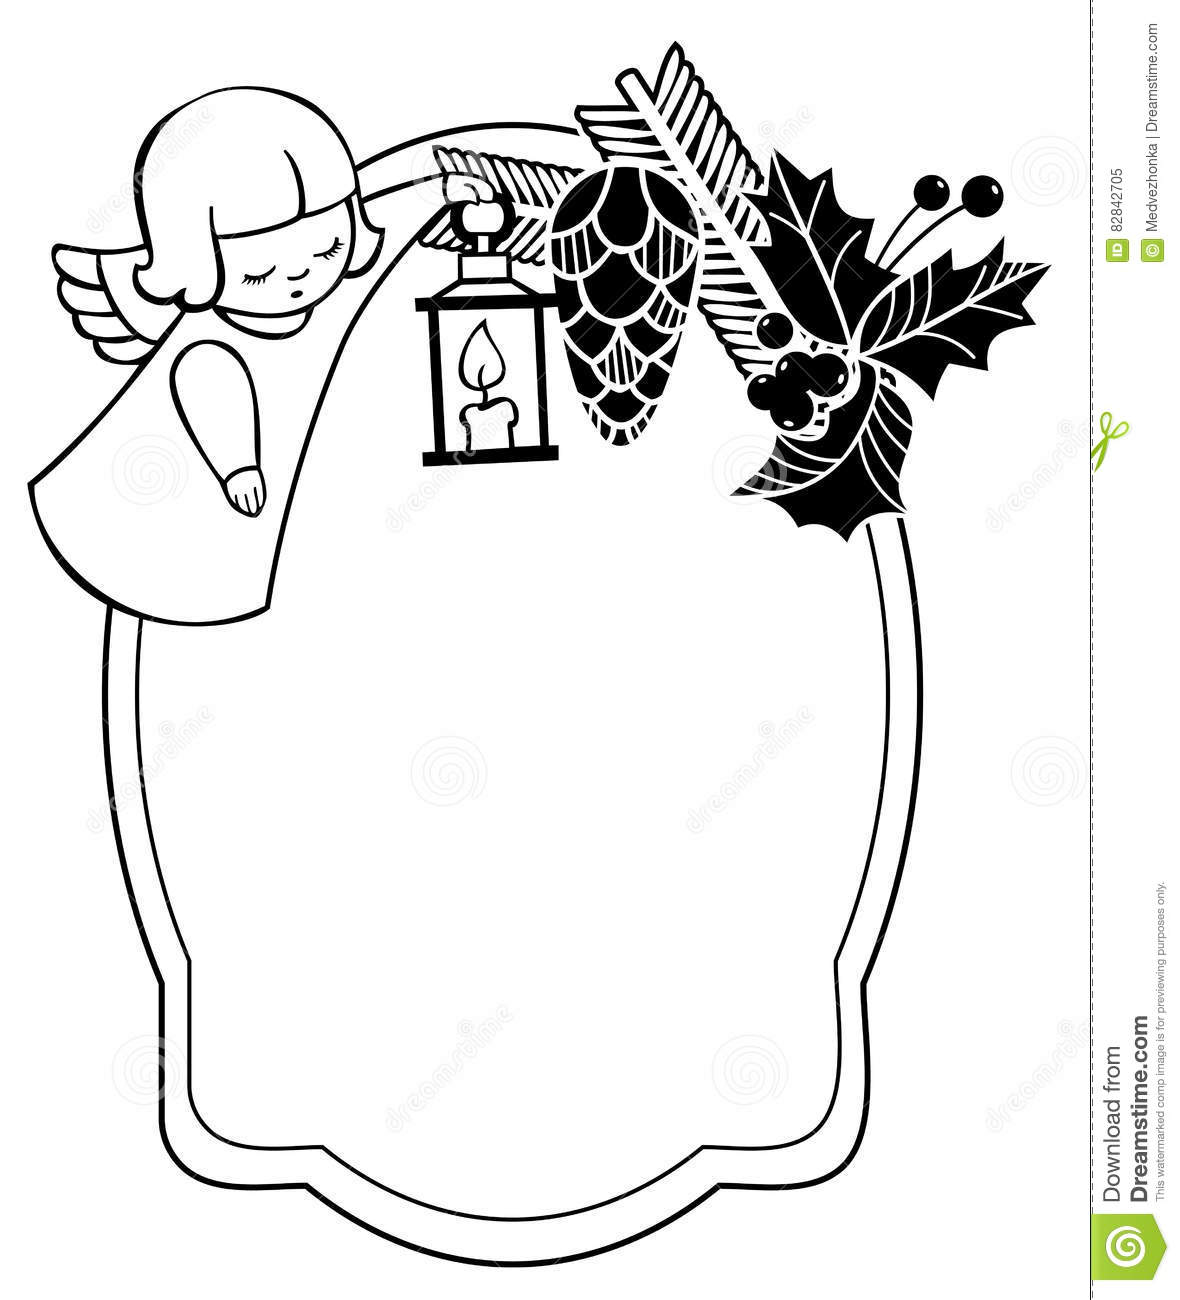 Black And White Christmas Frame With Cute Angel. Stock Illustration - Illustration of branch ...